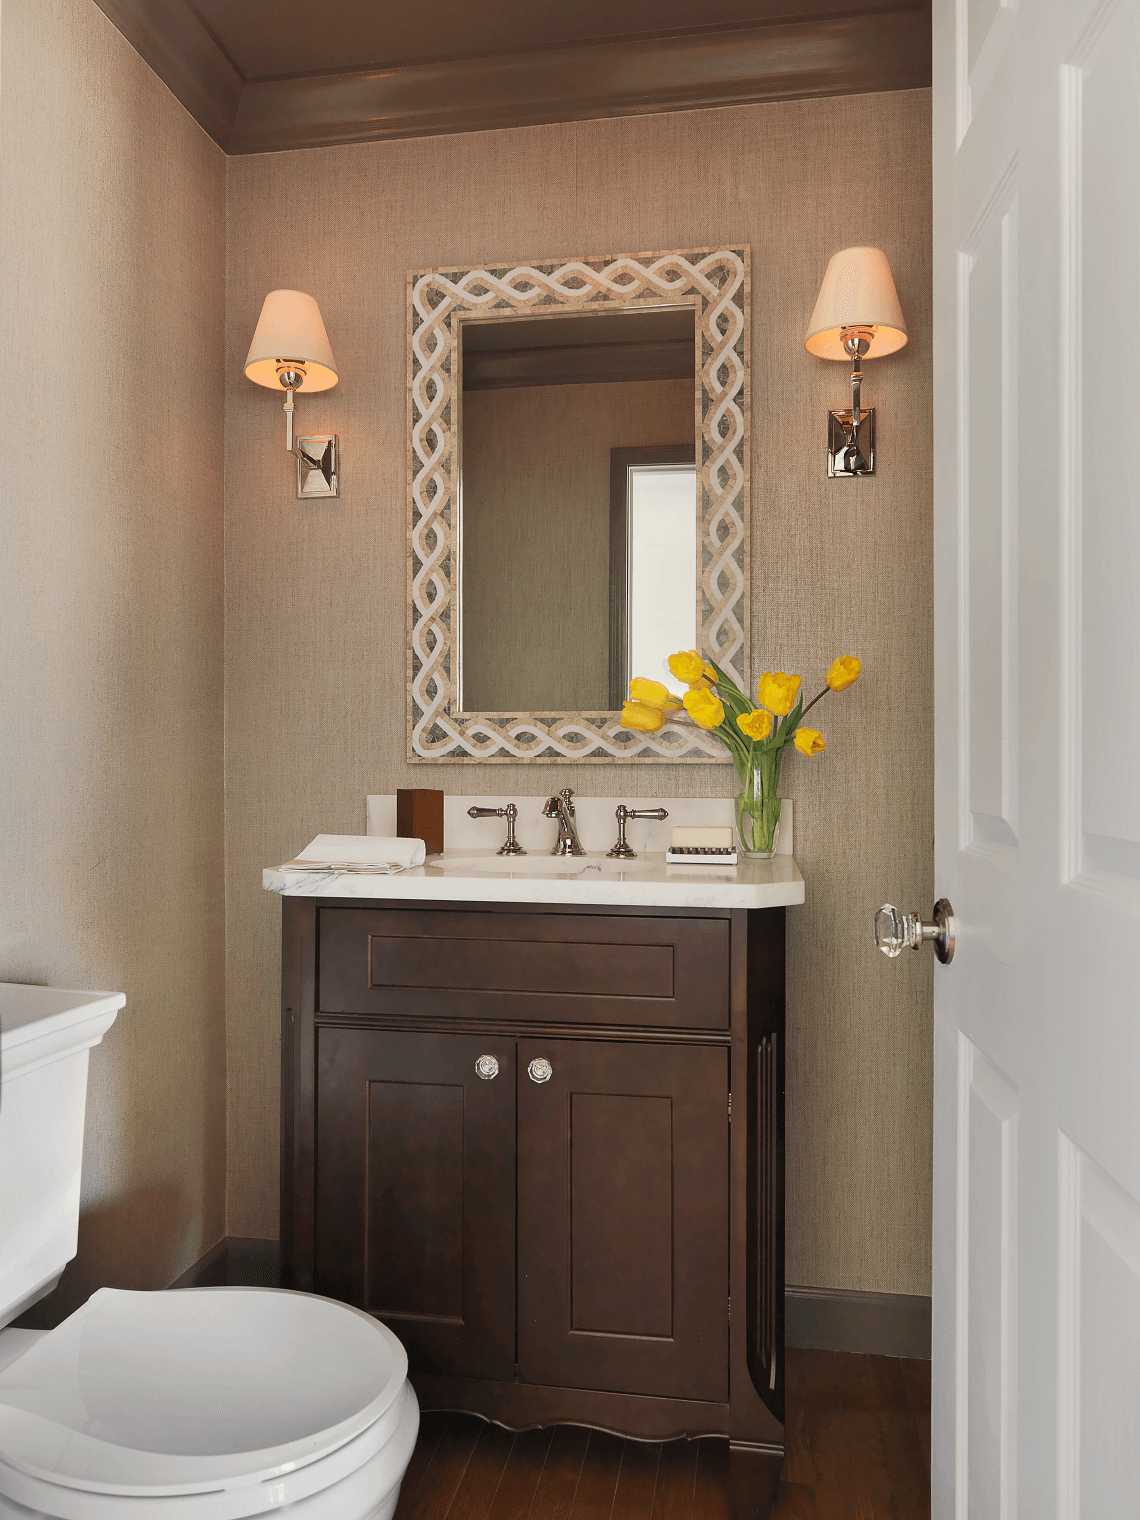 Powder Room Vanity transitional powder room vanity - beck/allen cabinetry